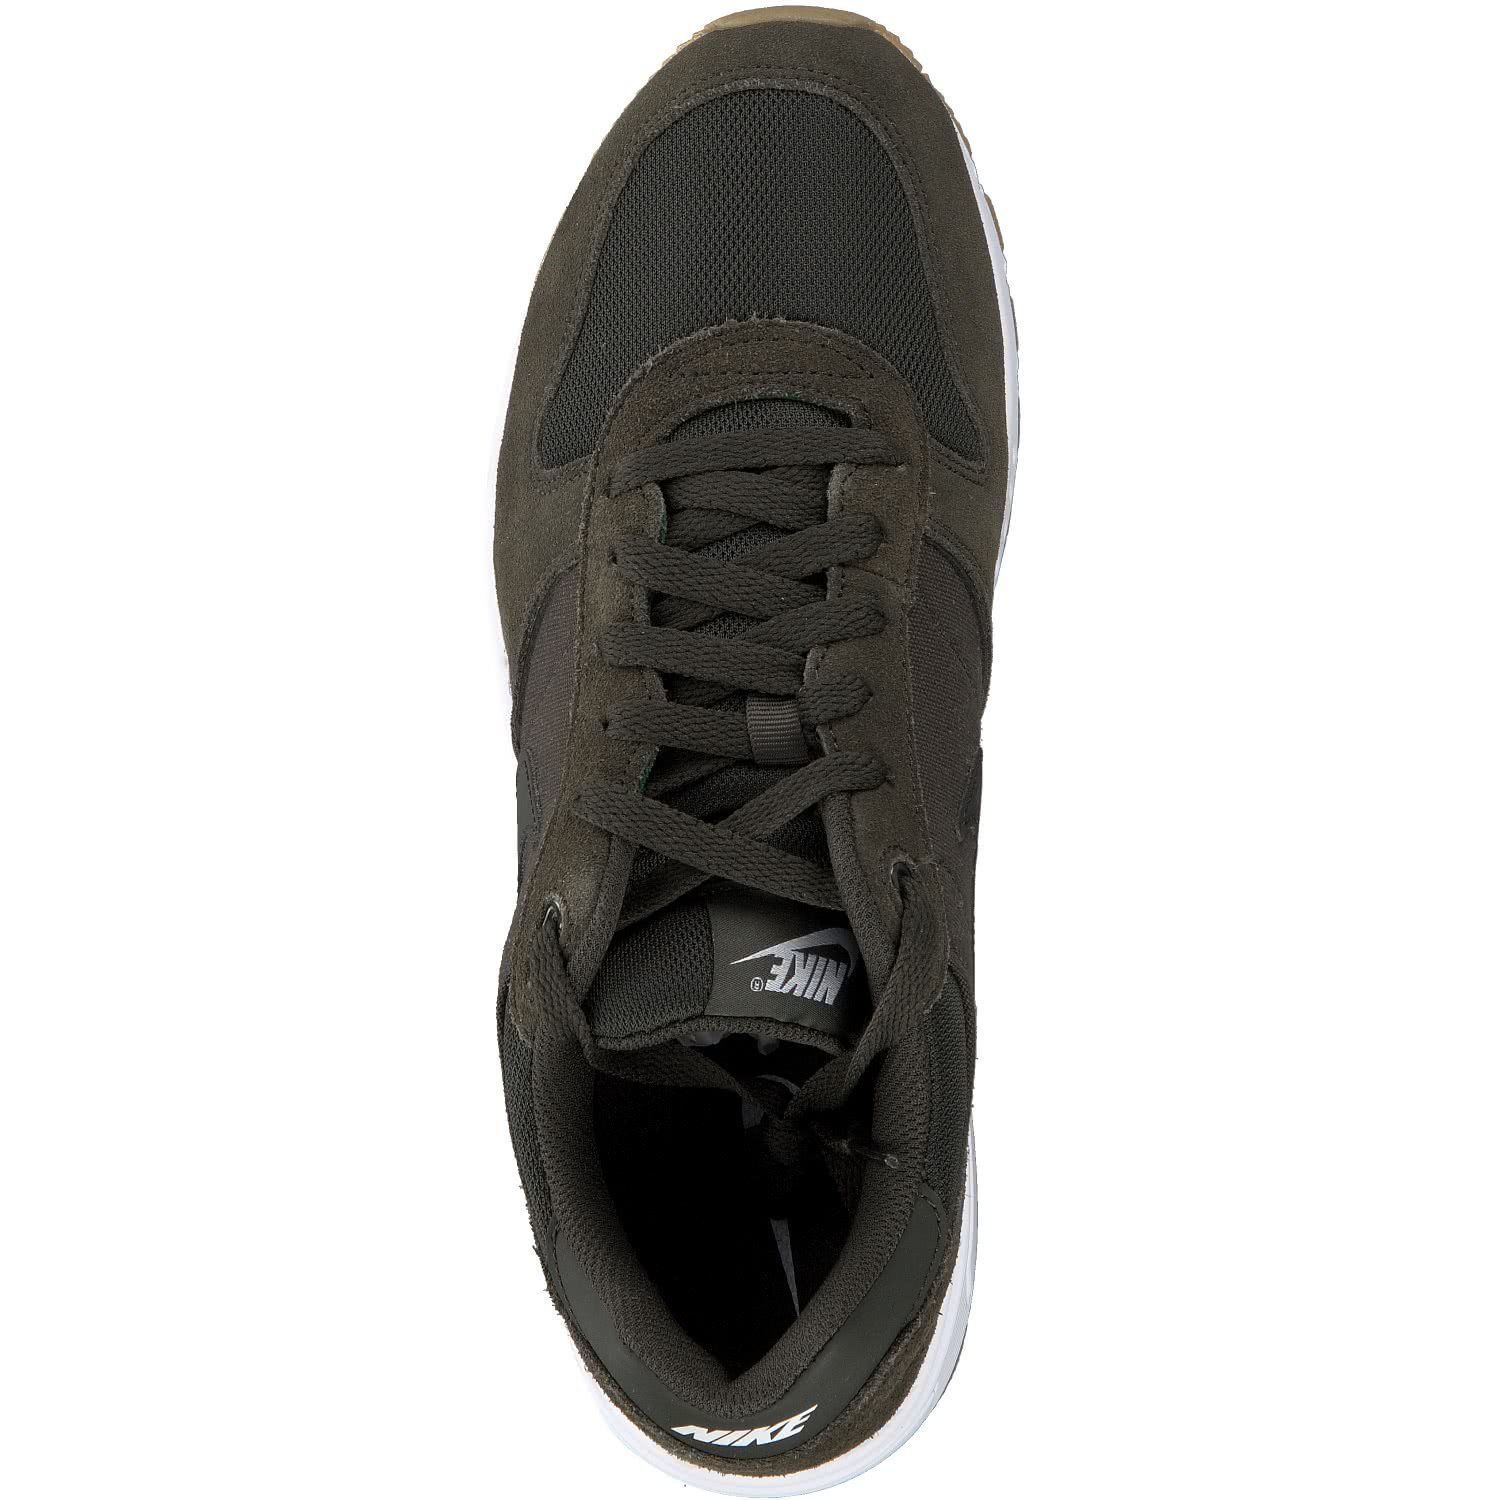 Nike Nightgazer Sports Shoes Sneakers Trainers - All Colors And Sizes